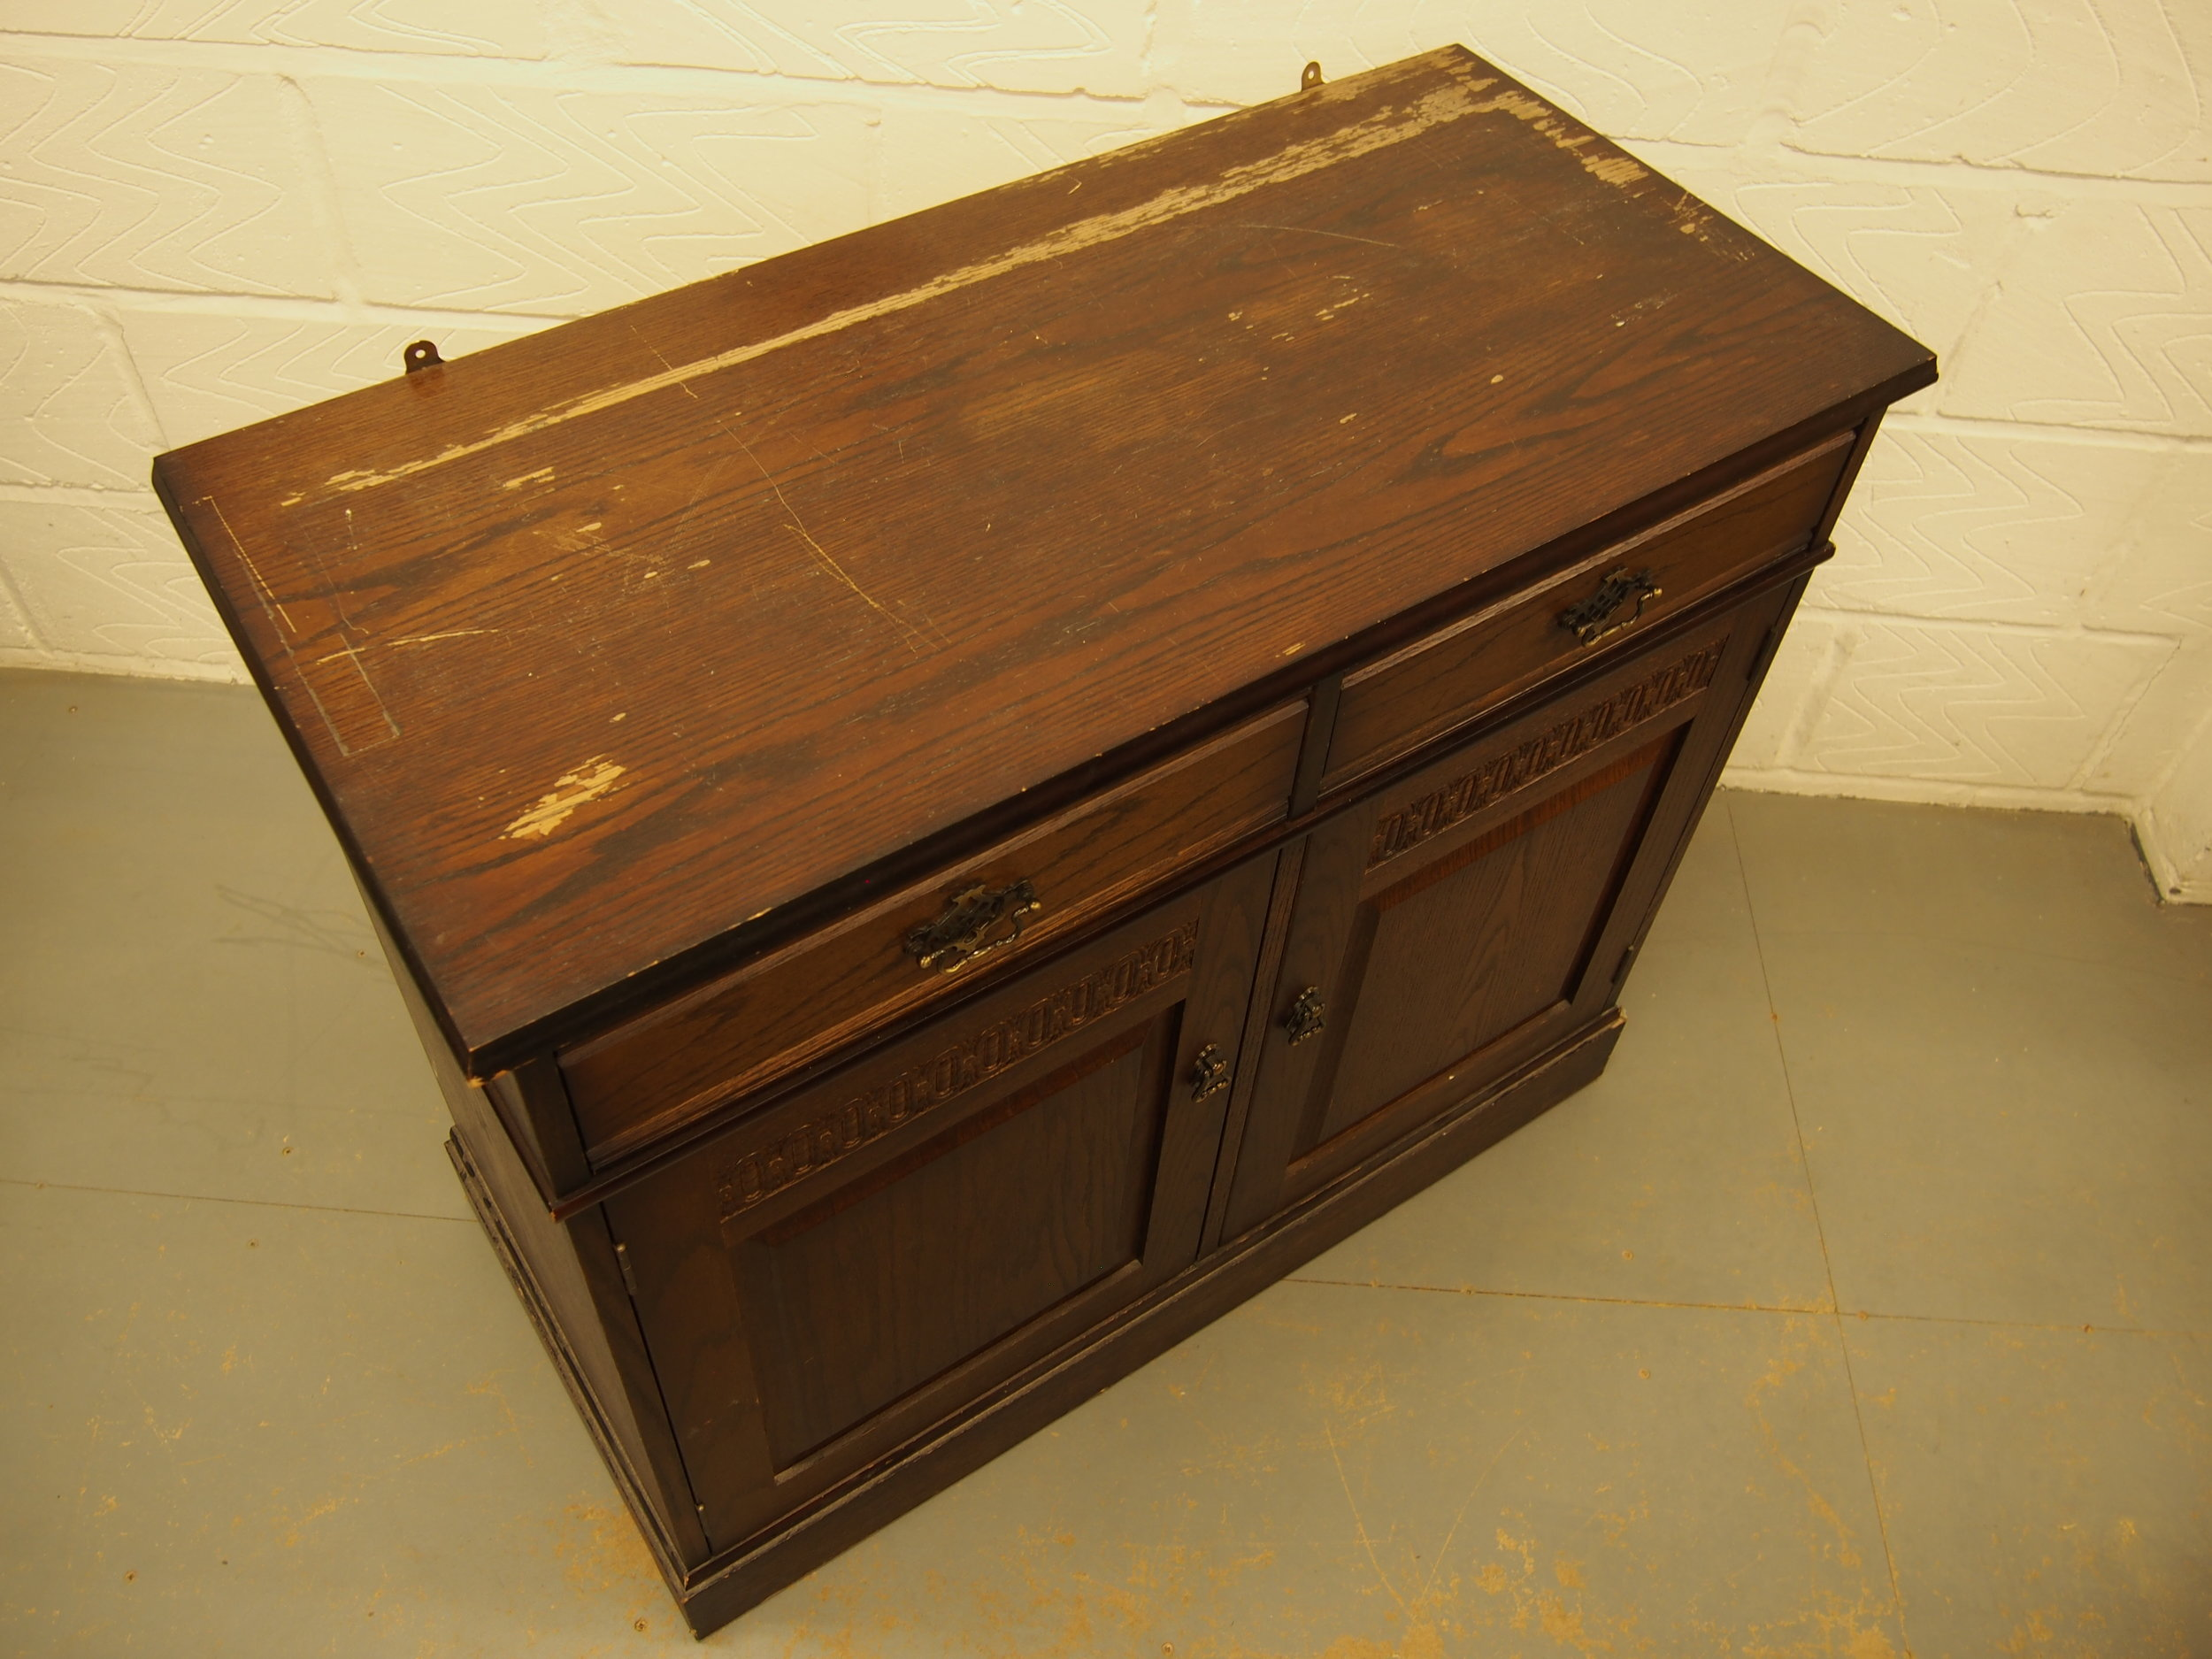 Original condition of the Oak Traditional Dresser. Many marks, scratches and stains were evident. The entire surface was striped and then re polished to match the existing colour.